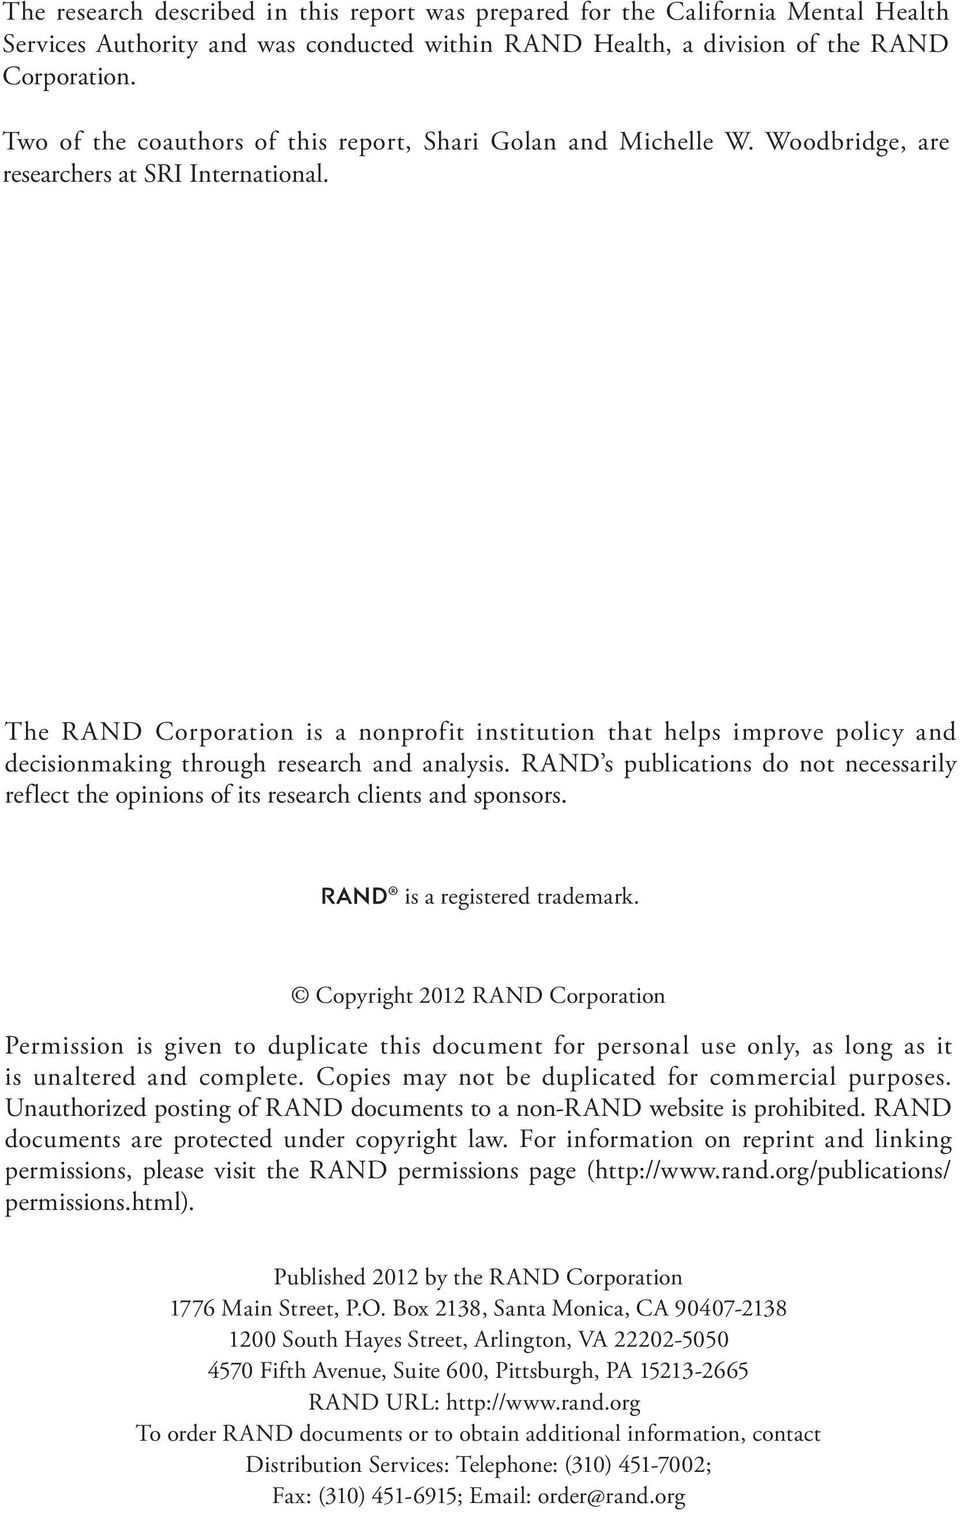 The RAND Corporation is a nonprofit institution that helps improve policy and decisionmaking through research and analysis.